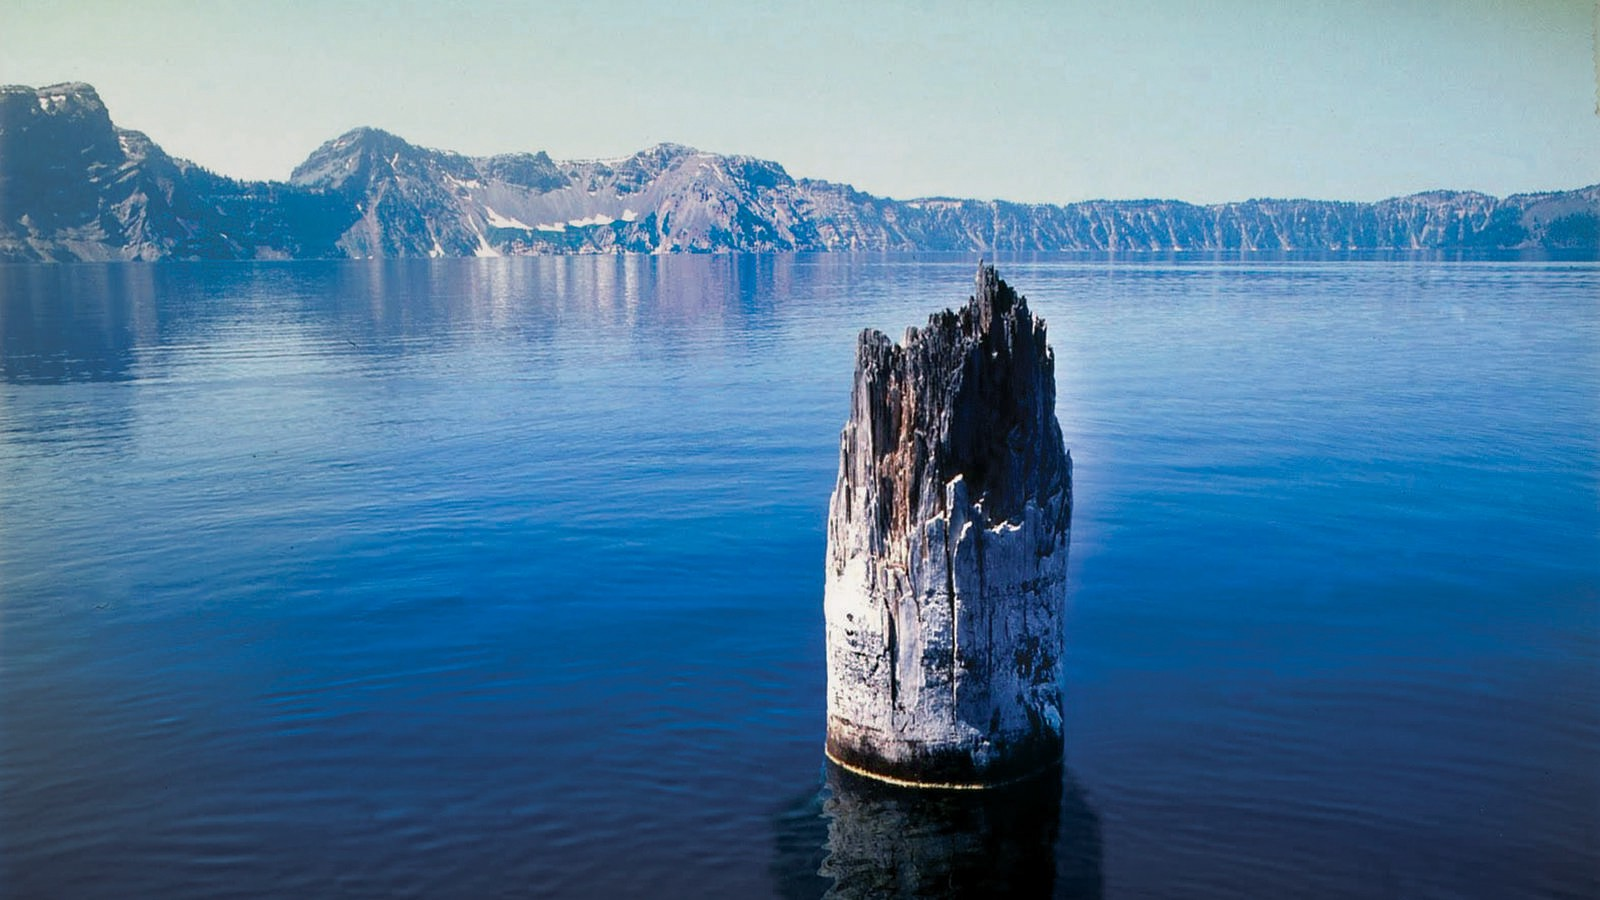 This ghost tree has been floating vertically in Crater Lake for more than 100 years